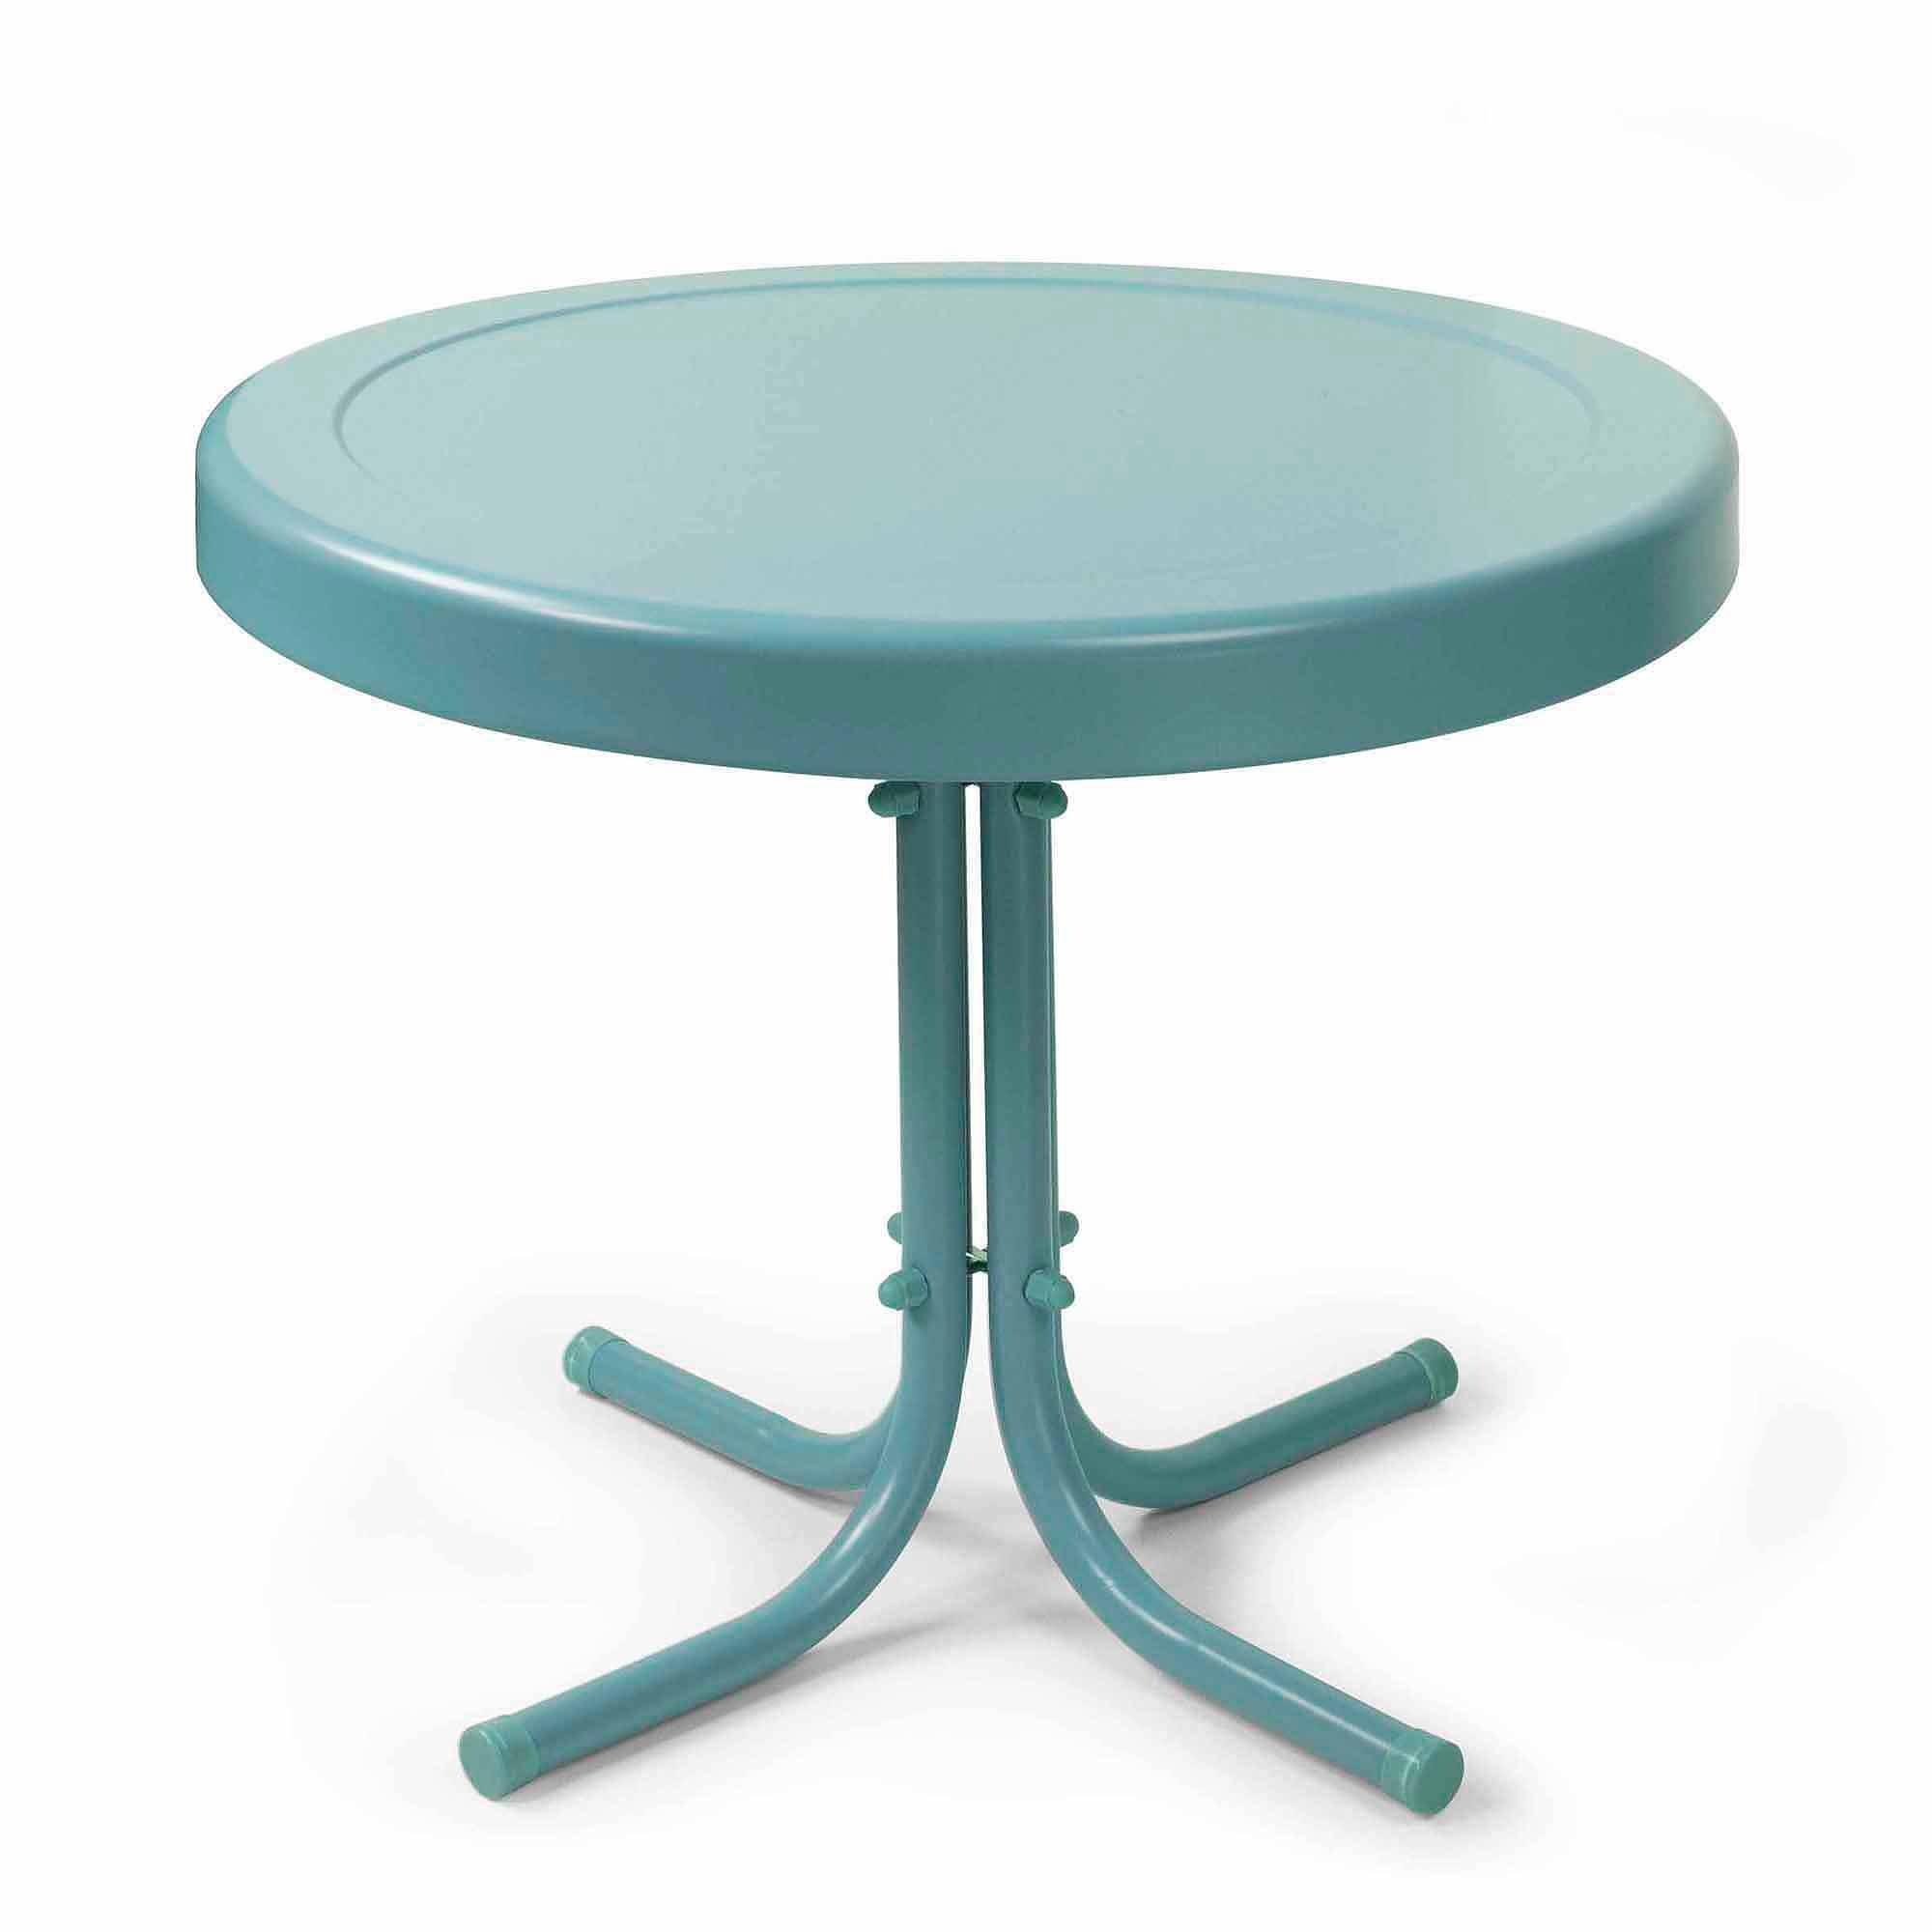 Retro Outdoor Bistro Table, Multiple Colors - Walmart pertaining to White Retro Coffee Tables (Image 21 of 30)